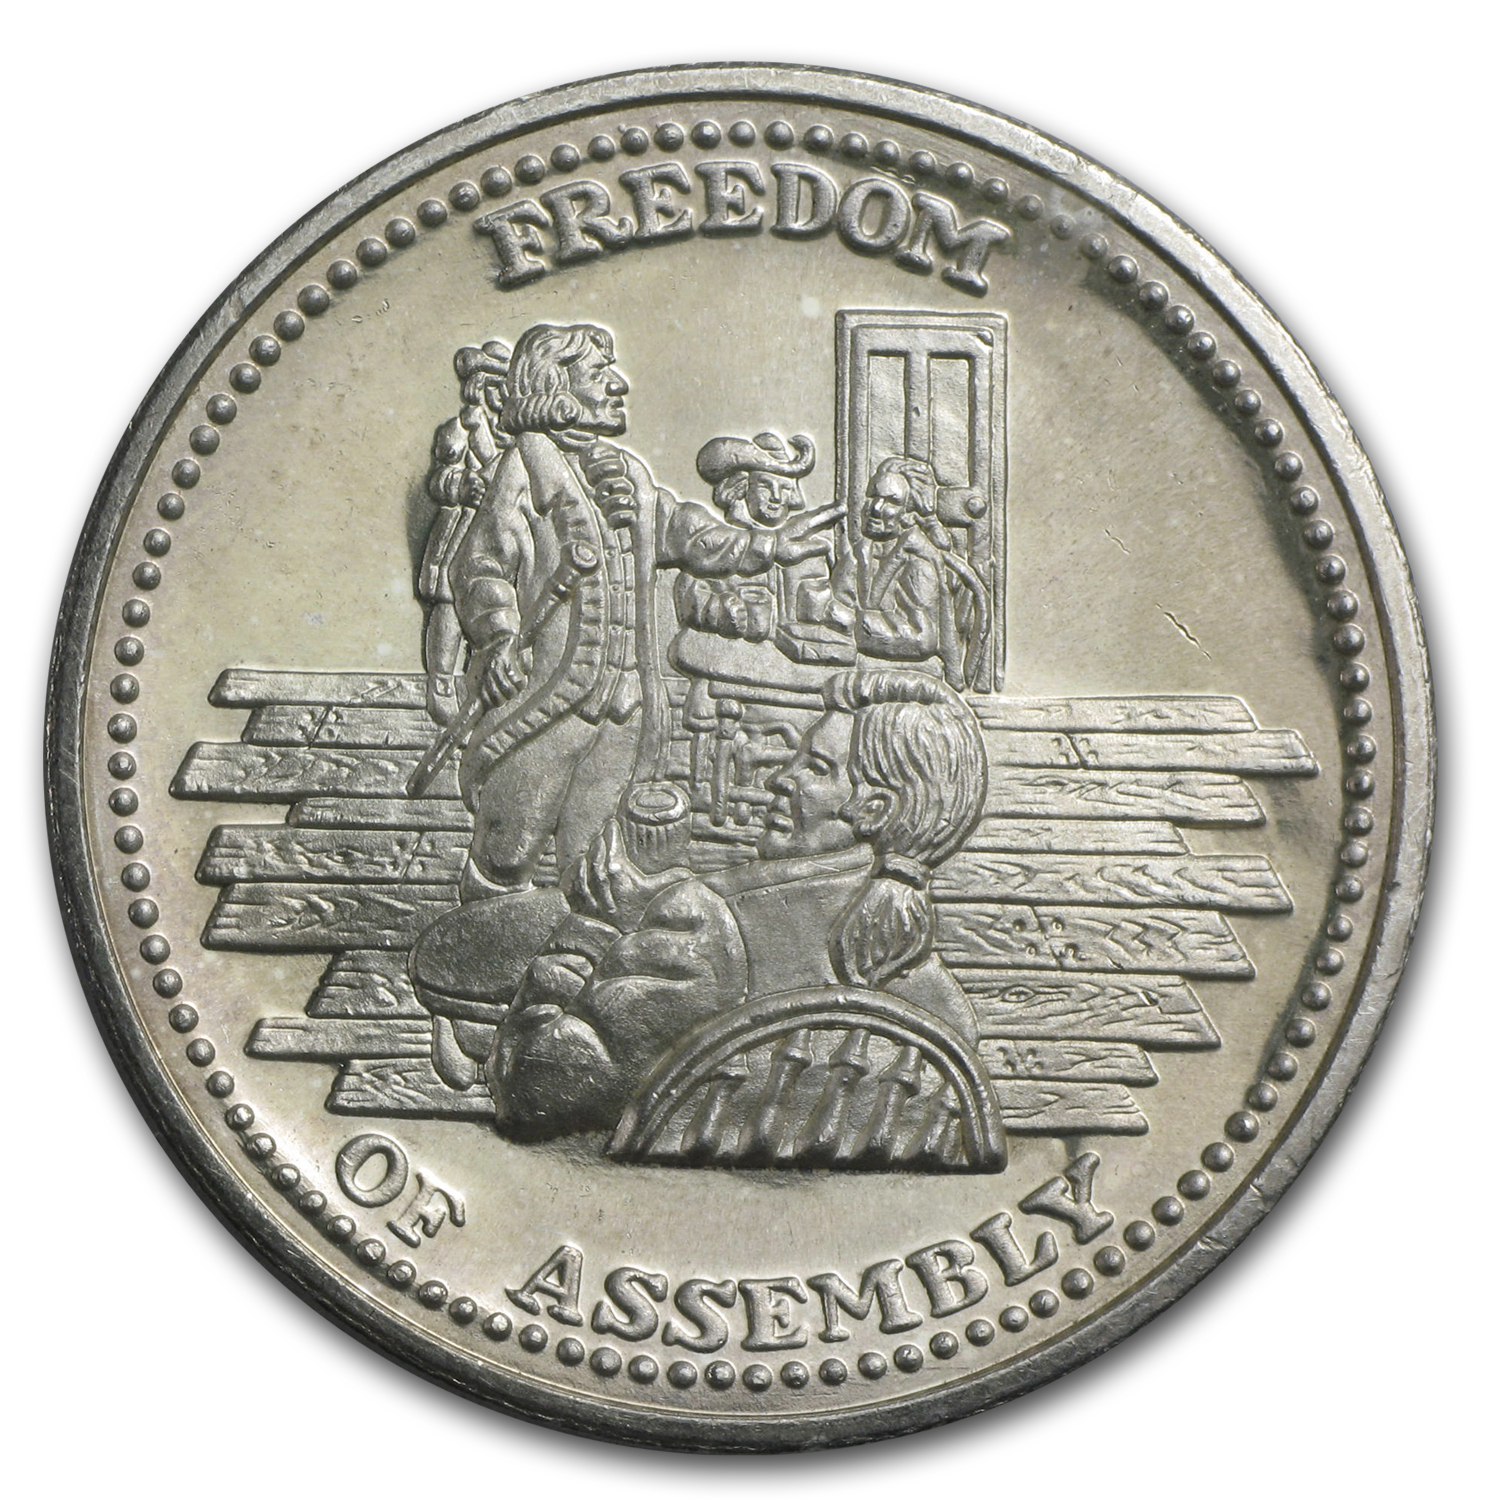 1 oz Silver Round - Johnson Matthey (Freedom of Assembly)